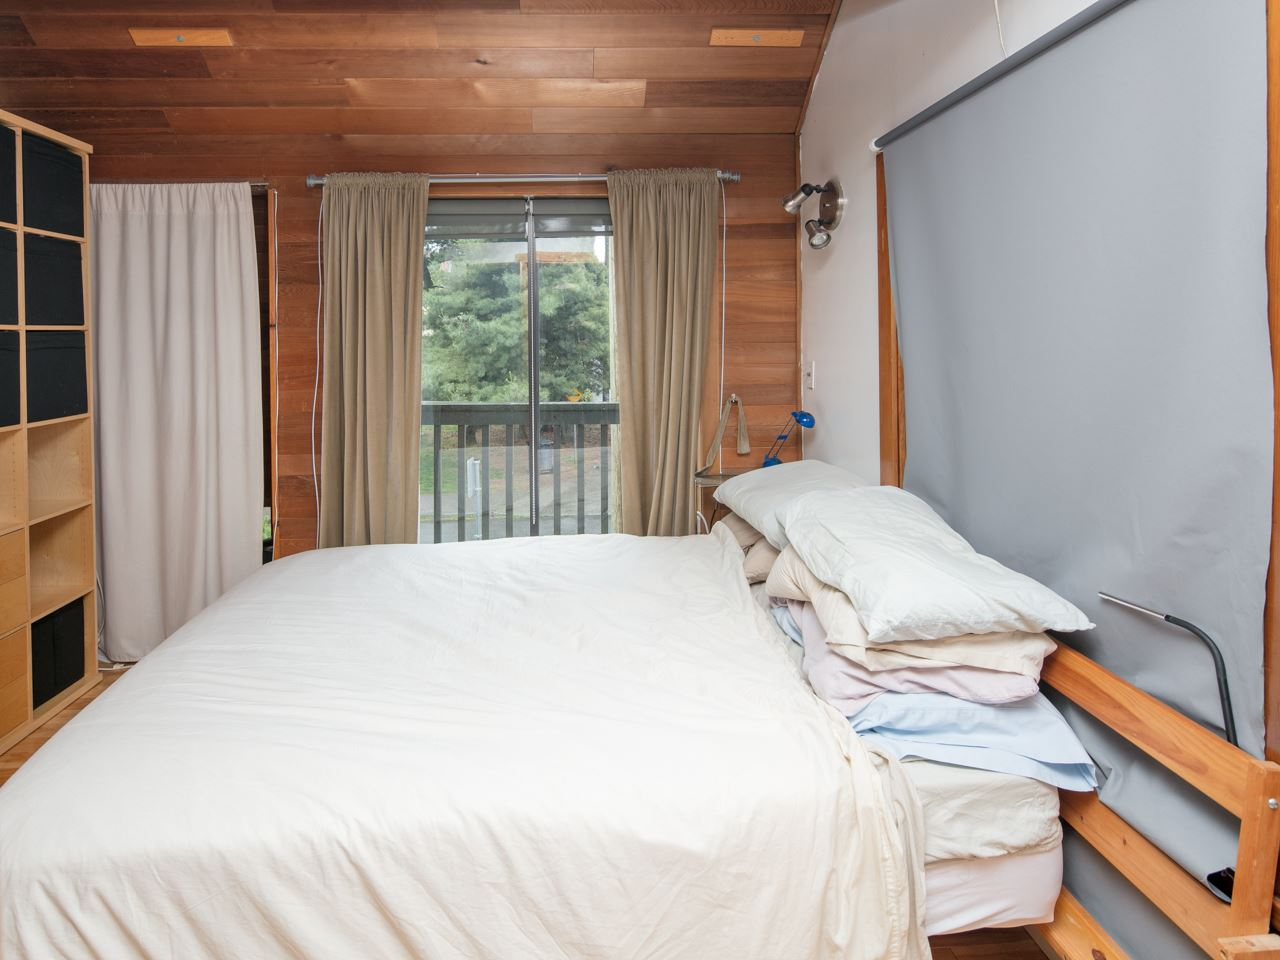 "Photo 9: 730 HAWKS Avenue in Vancouver: Mount Pleasant VE Townhouse for sale in ""Hawks Green"" (Vancouver East)  : MLS(r) # R2179039"